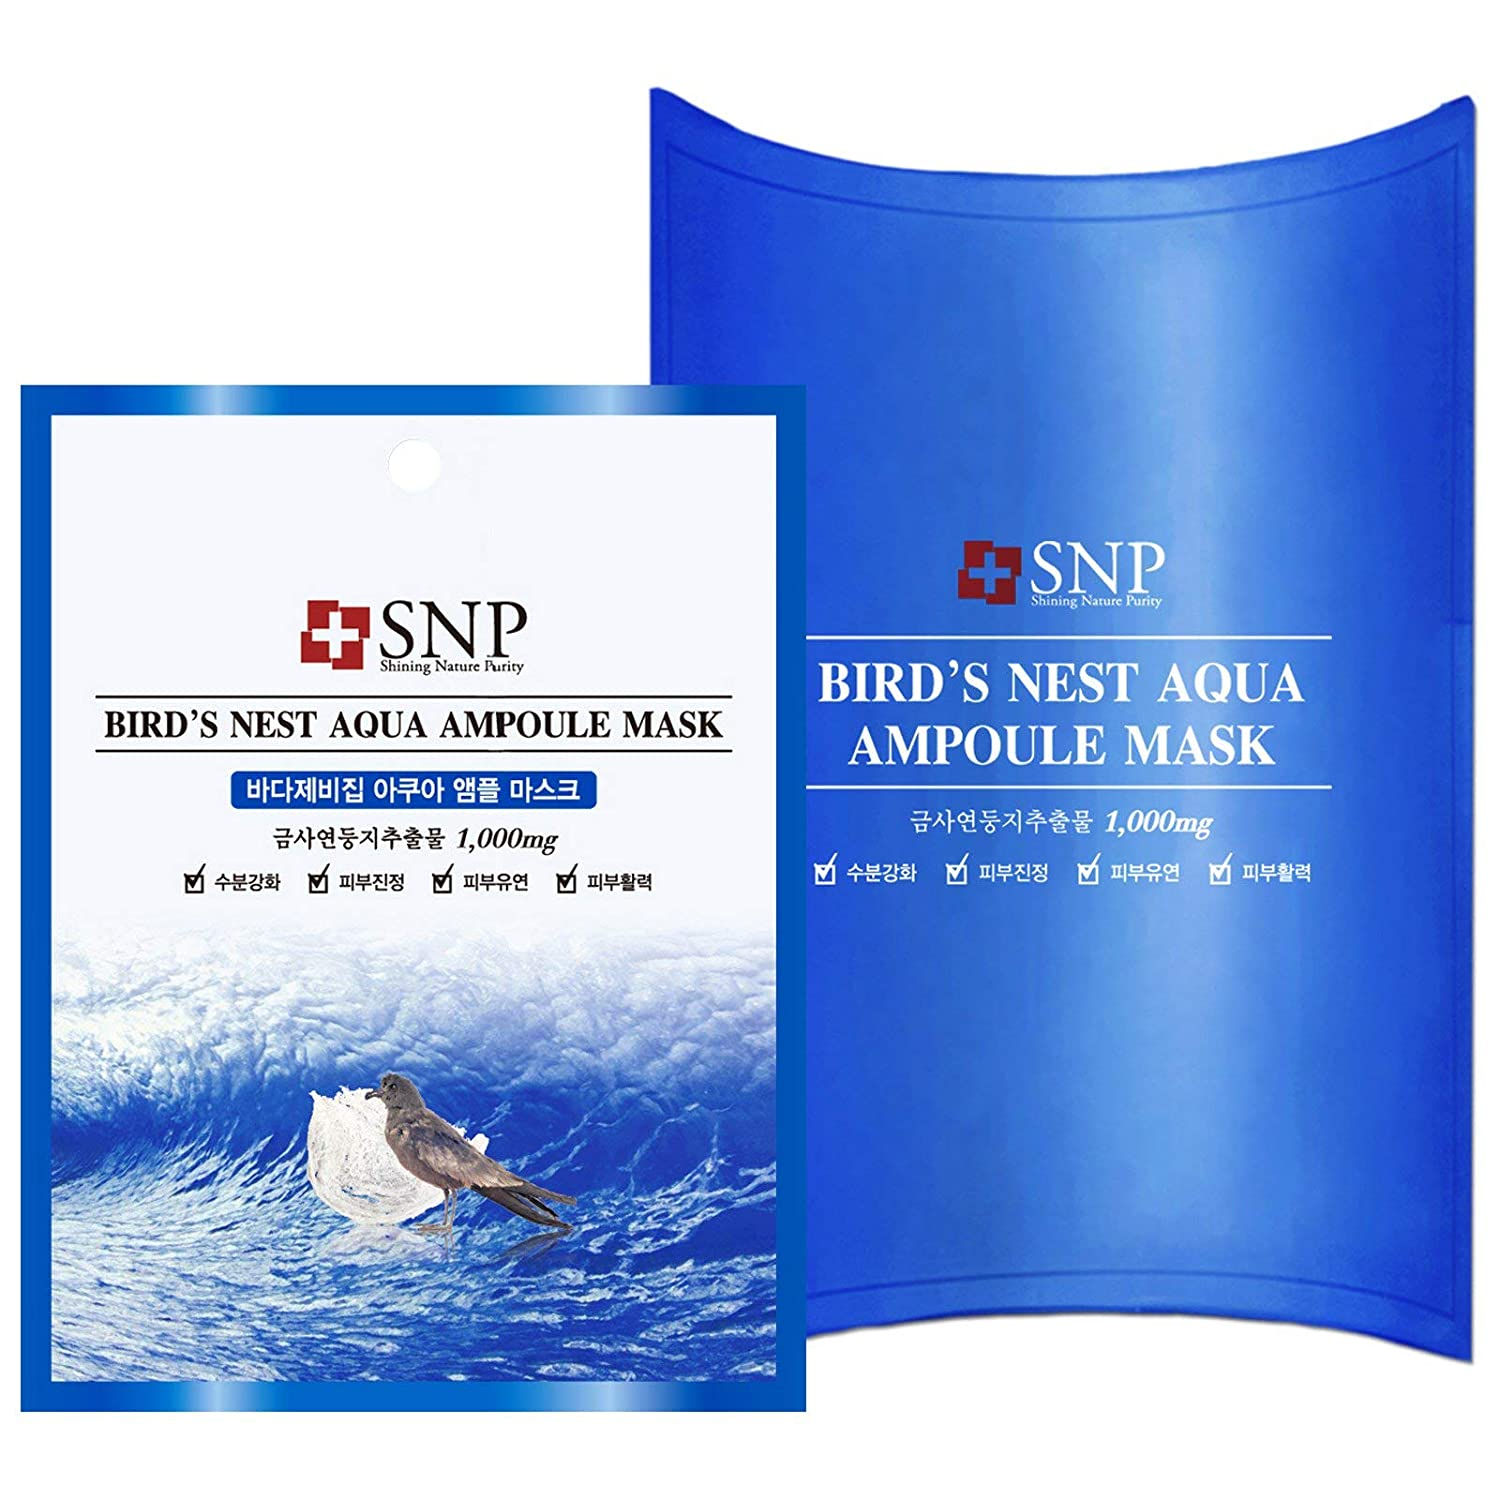 SNP Bird's Nest Aqua Ampoule Mask (New Version 3) (Pack of 10) - Moisturizing & Relieving Irritated Skin